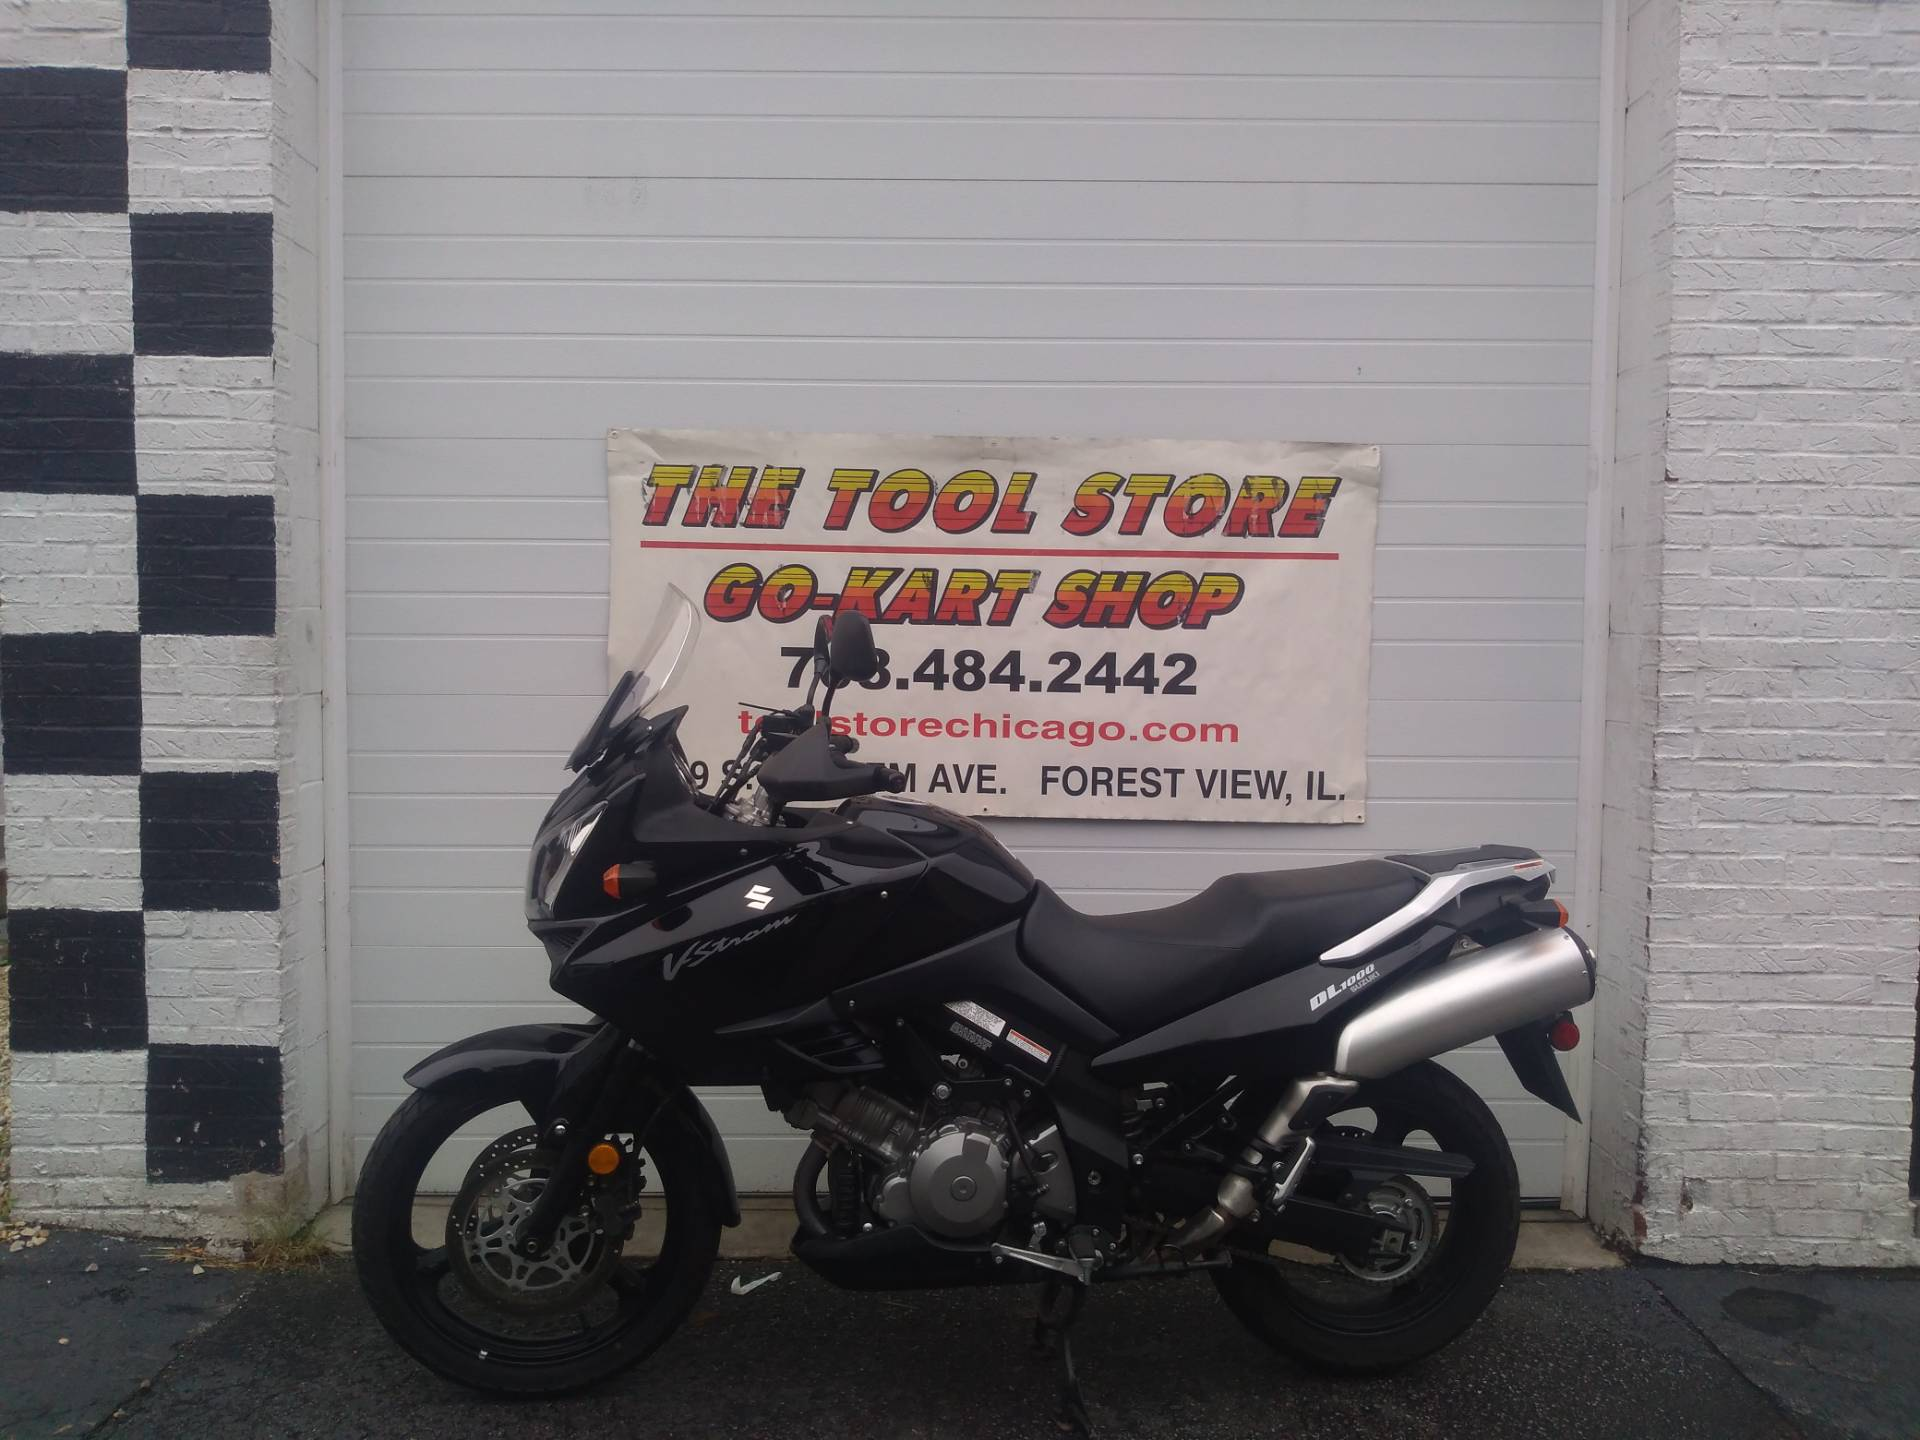 2005 Suzuki DL1000V STORM in Forest View, Illinois